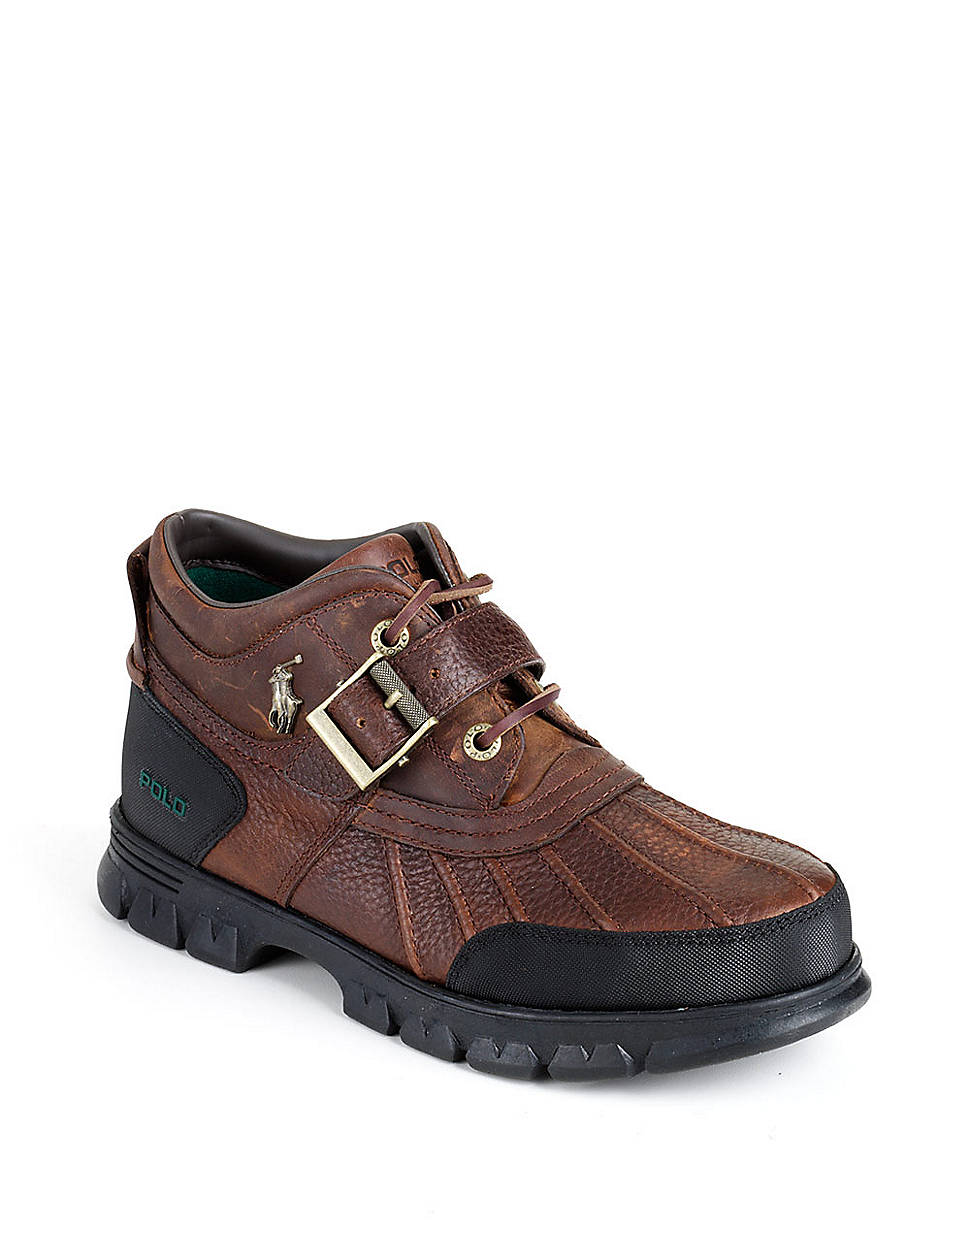 polo ralph lauren dover iii leather hiking boots in brown for men lyst. Black Bedroom Furniture Sets. Home Design Ideas